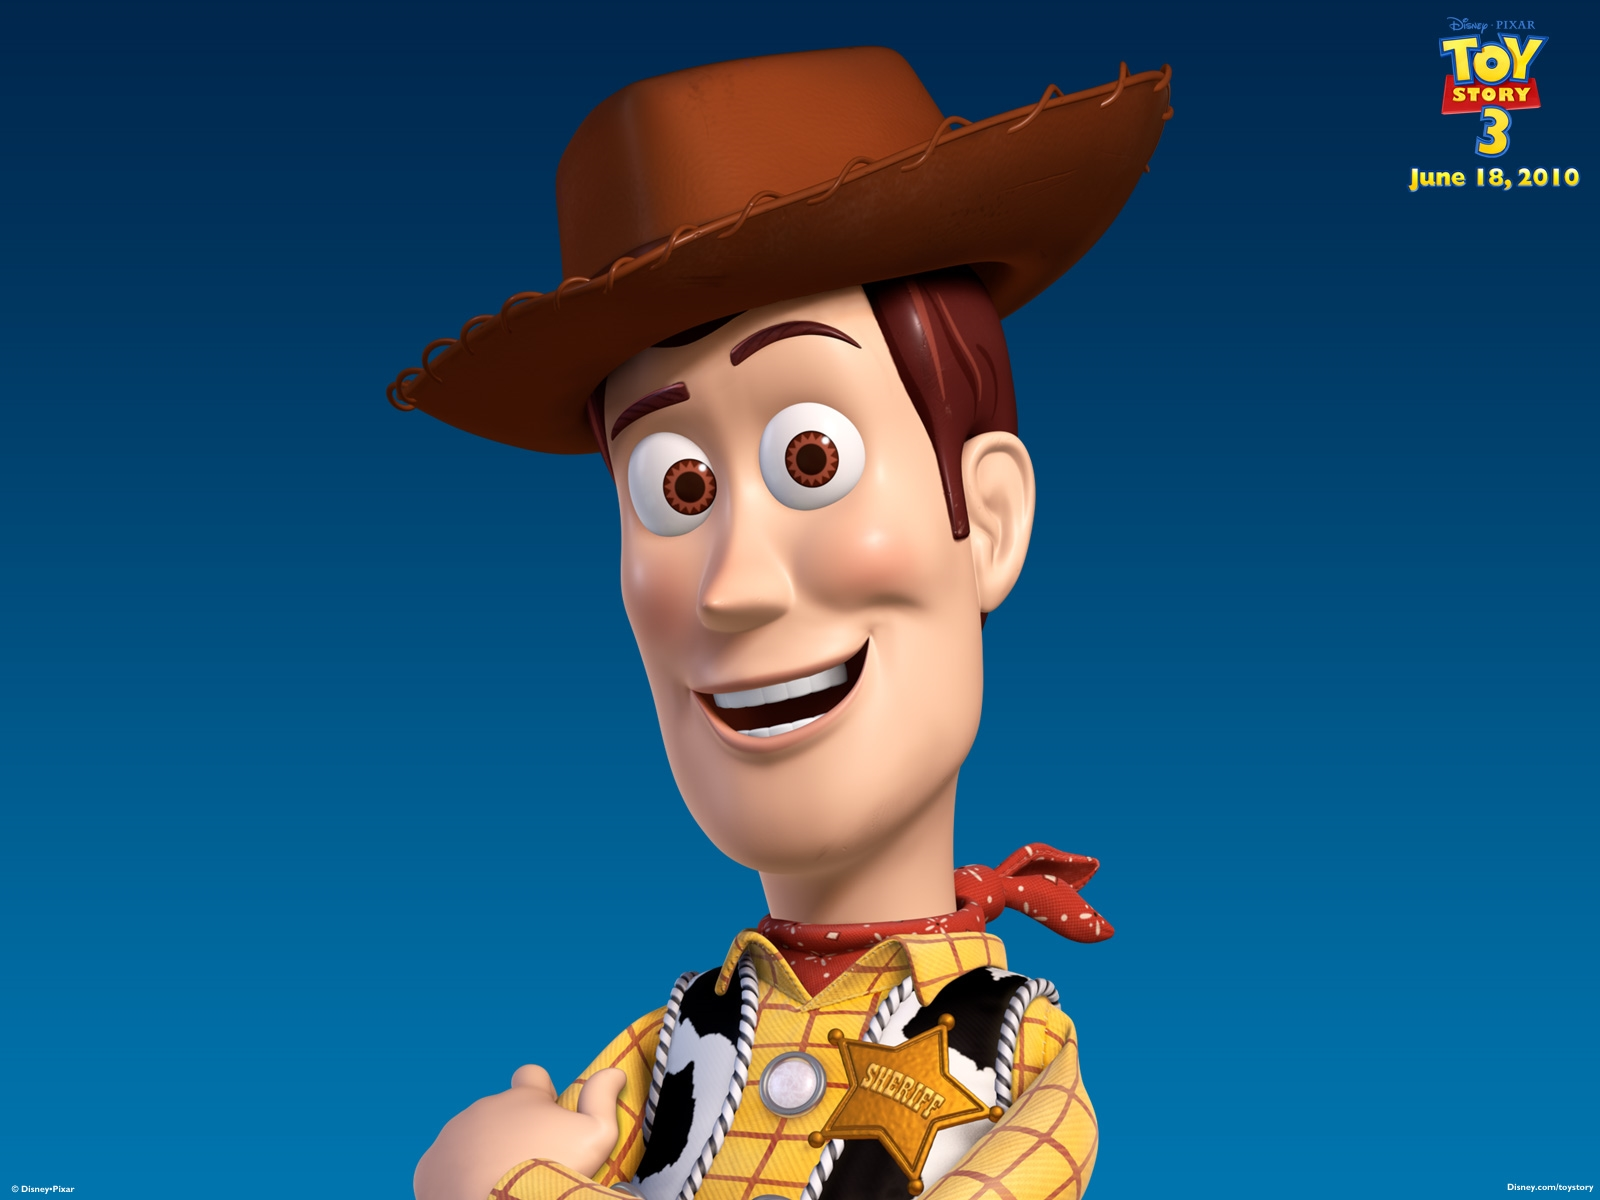 toystory 1 2 3 woody wallpaper background